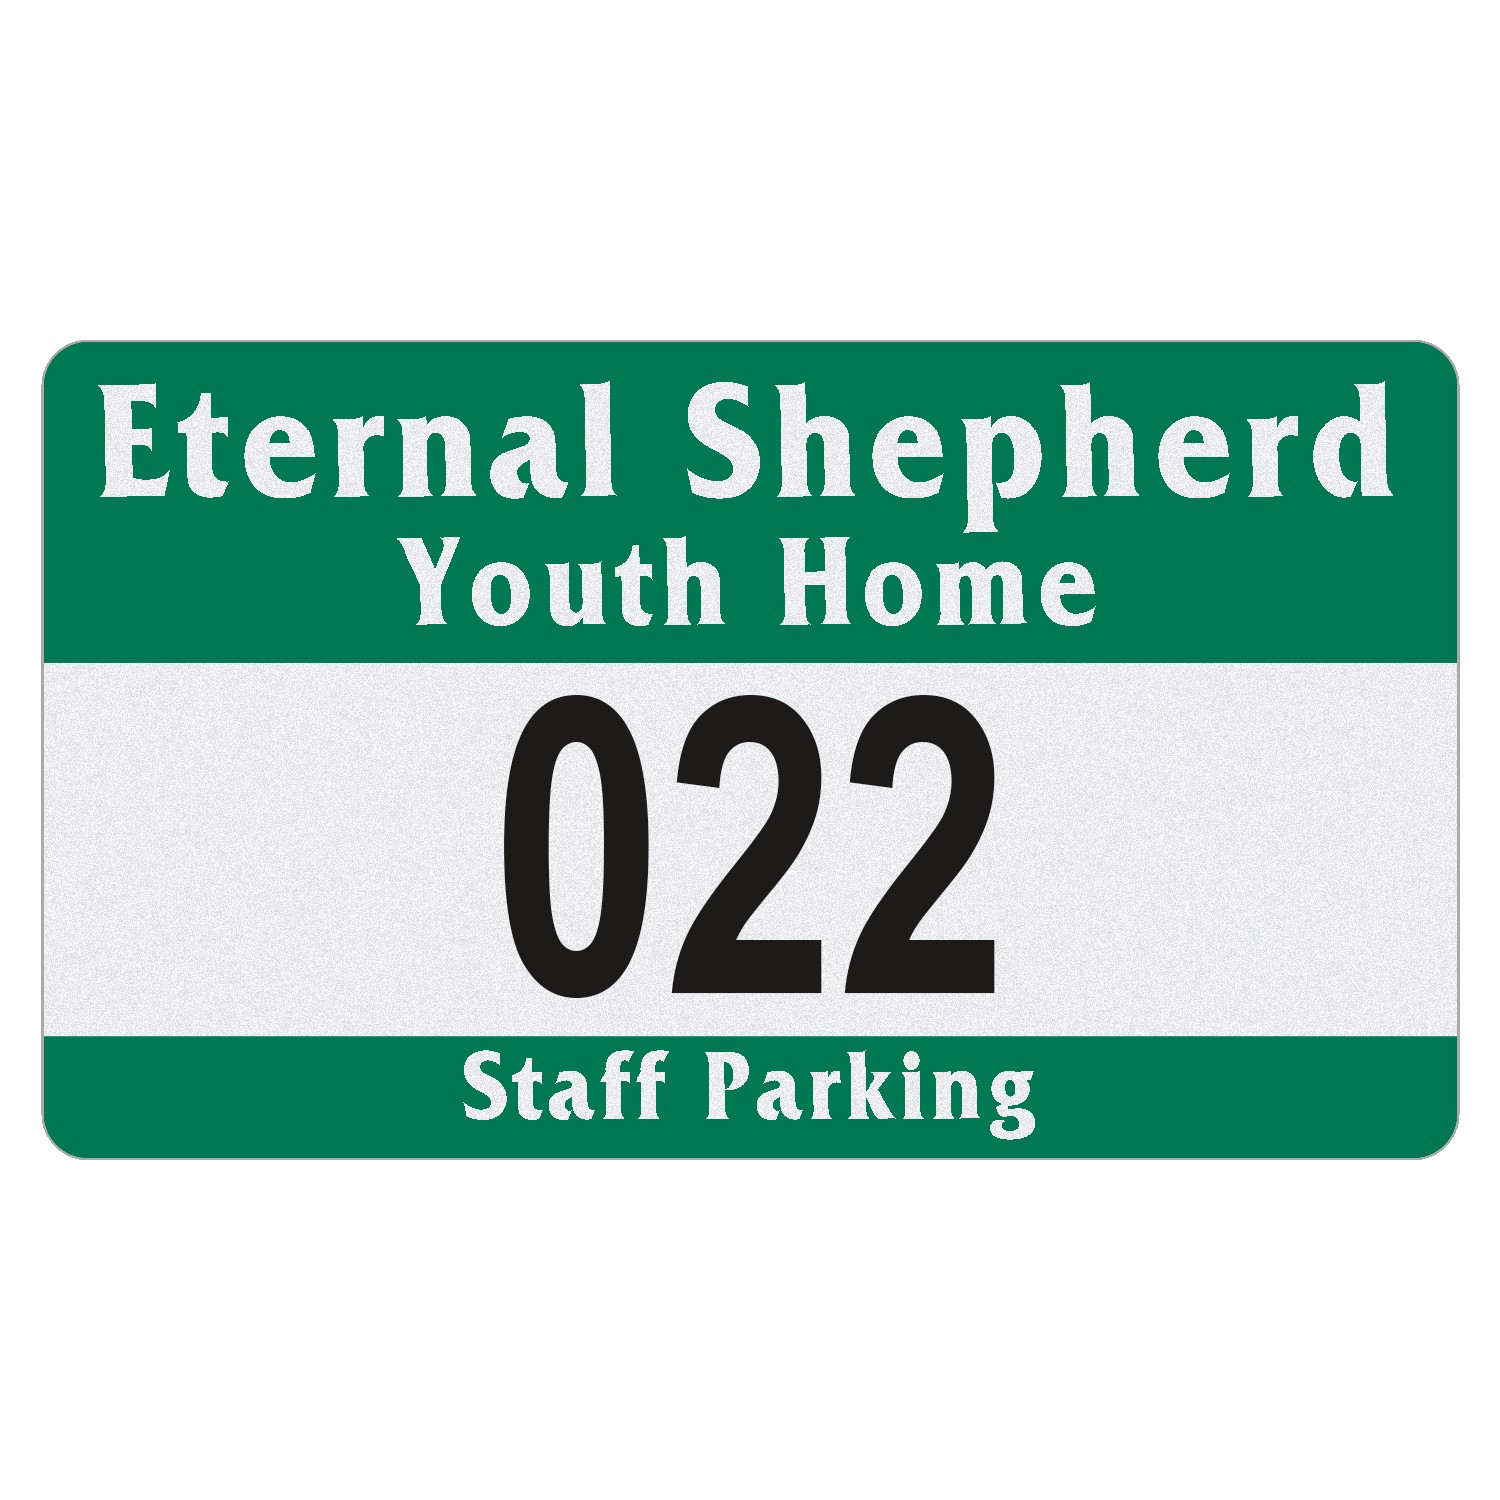 "185489556-183 - Rectangle White Reflective Outside Parking Permit Decal (2 3/4""x4 3/4"") - thumbnail"